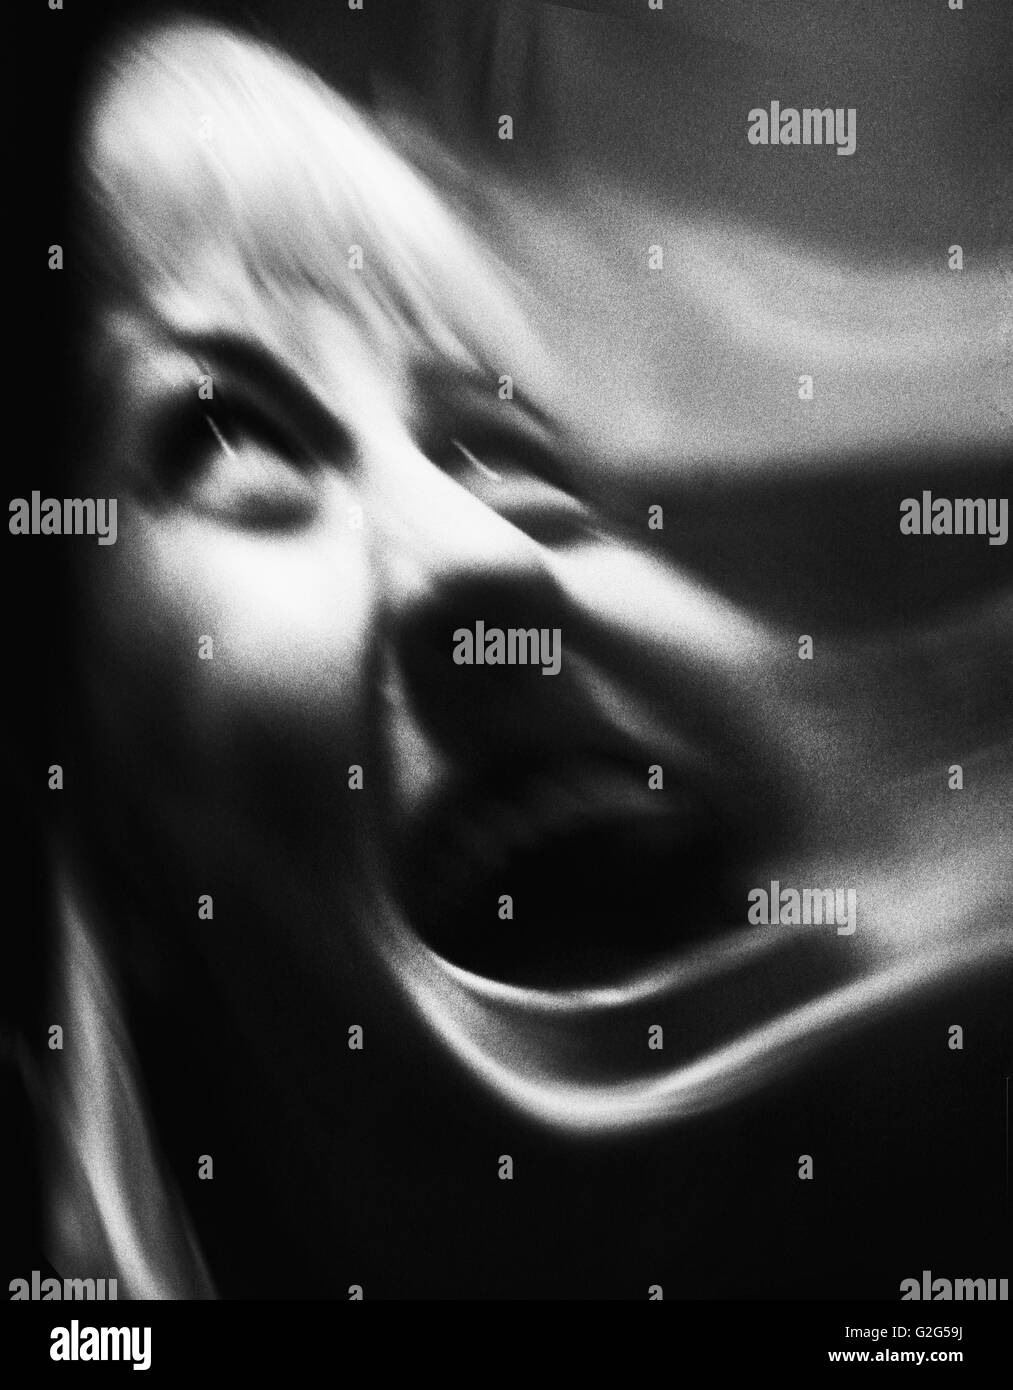 Distorted Portrait of Woman Screaming, Close-Up - Stock Image